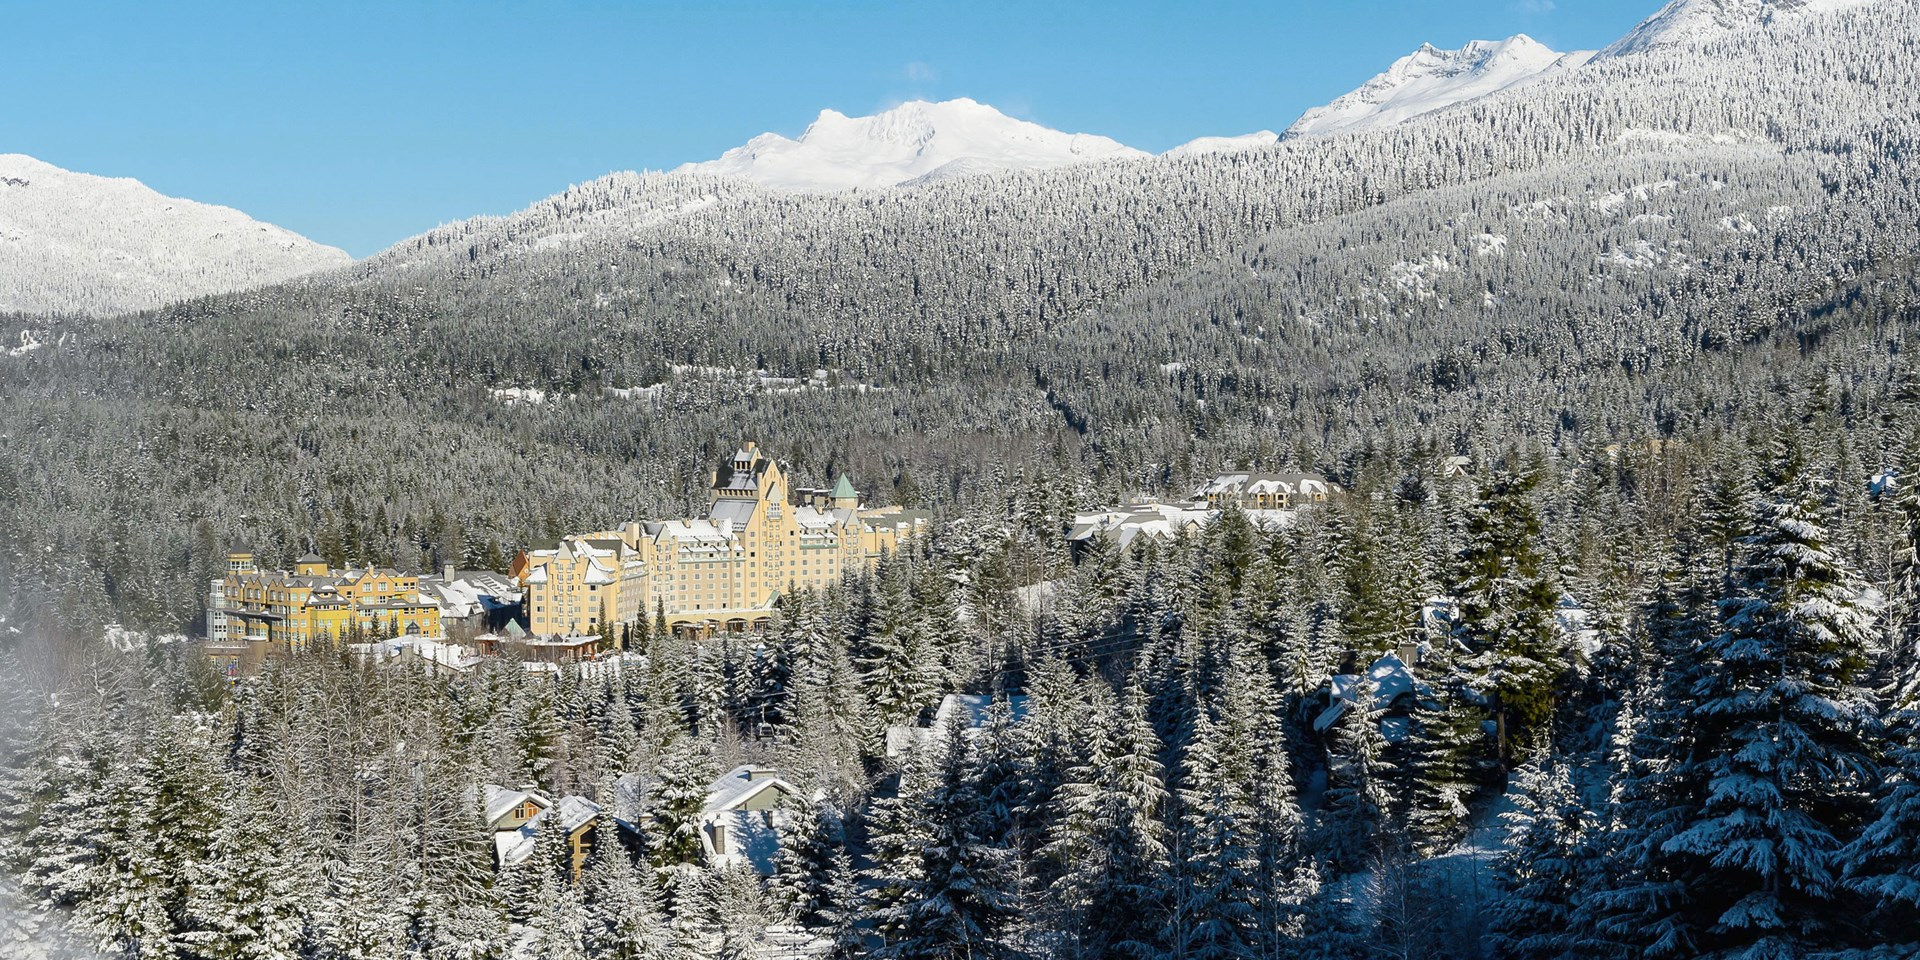 Mountains and forest covered in snow with a large hotel in the middle